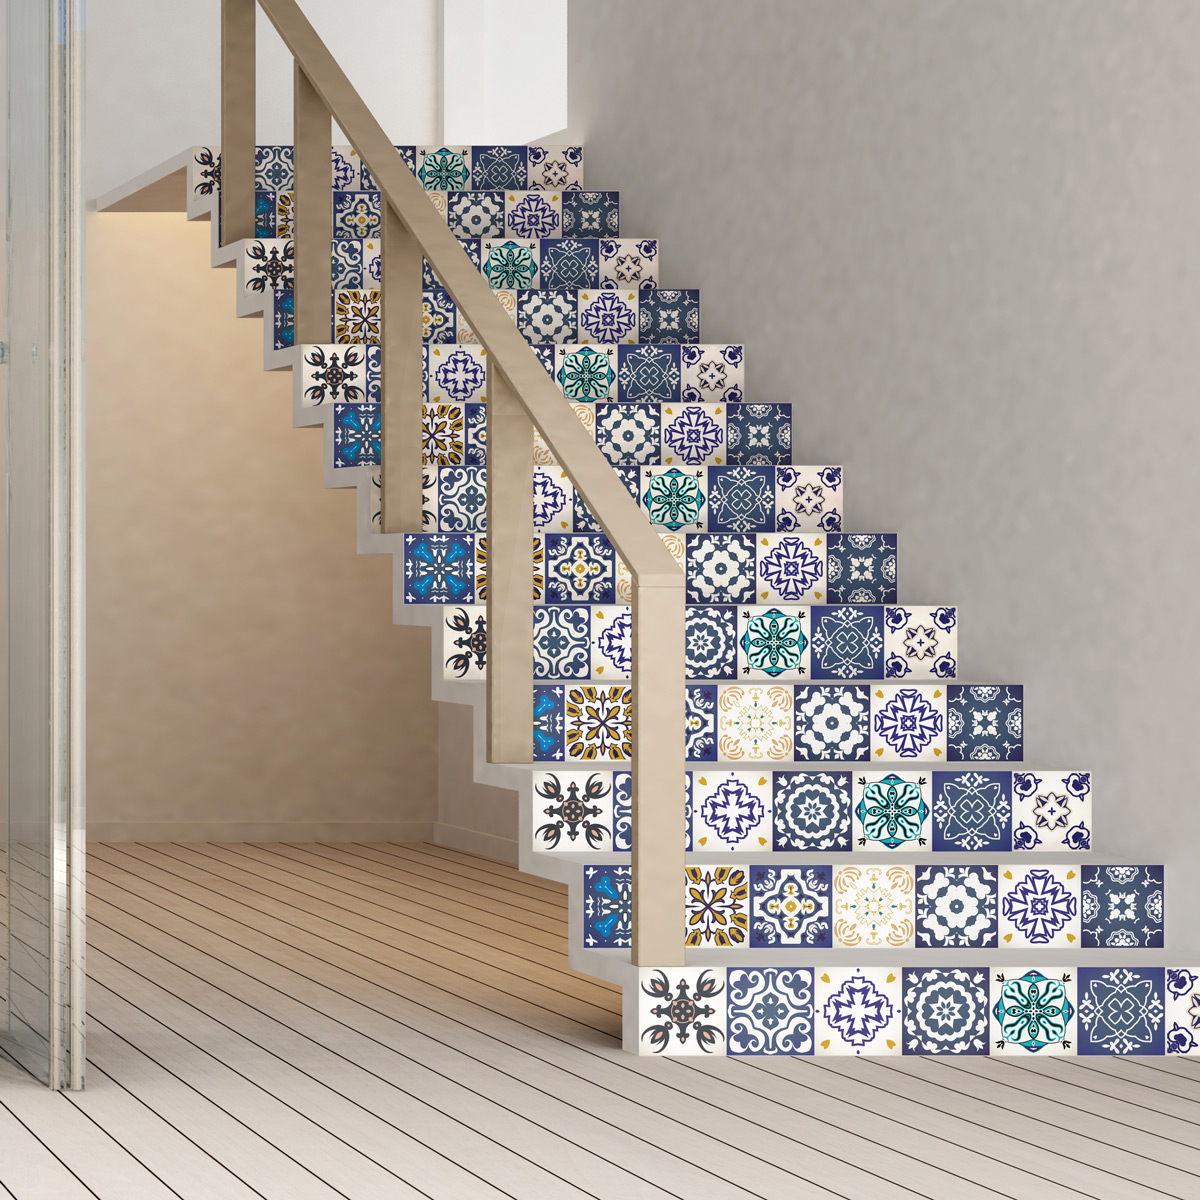 stickers escalier carreaux de ciment gelino x 2 ambiance sticker col stairs rv a0108 stickers. Black Bedroom Furniture Sets. Home Design Ideas